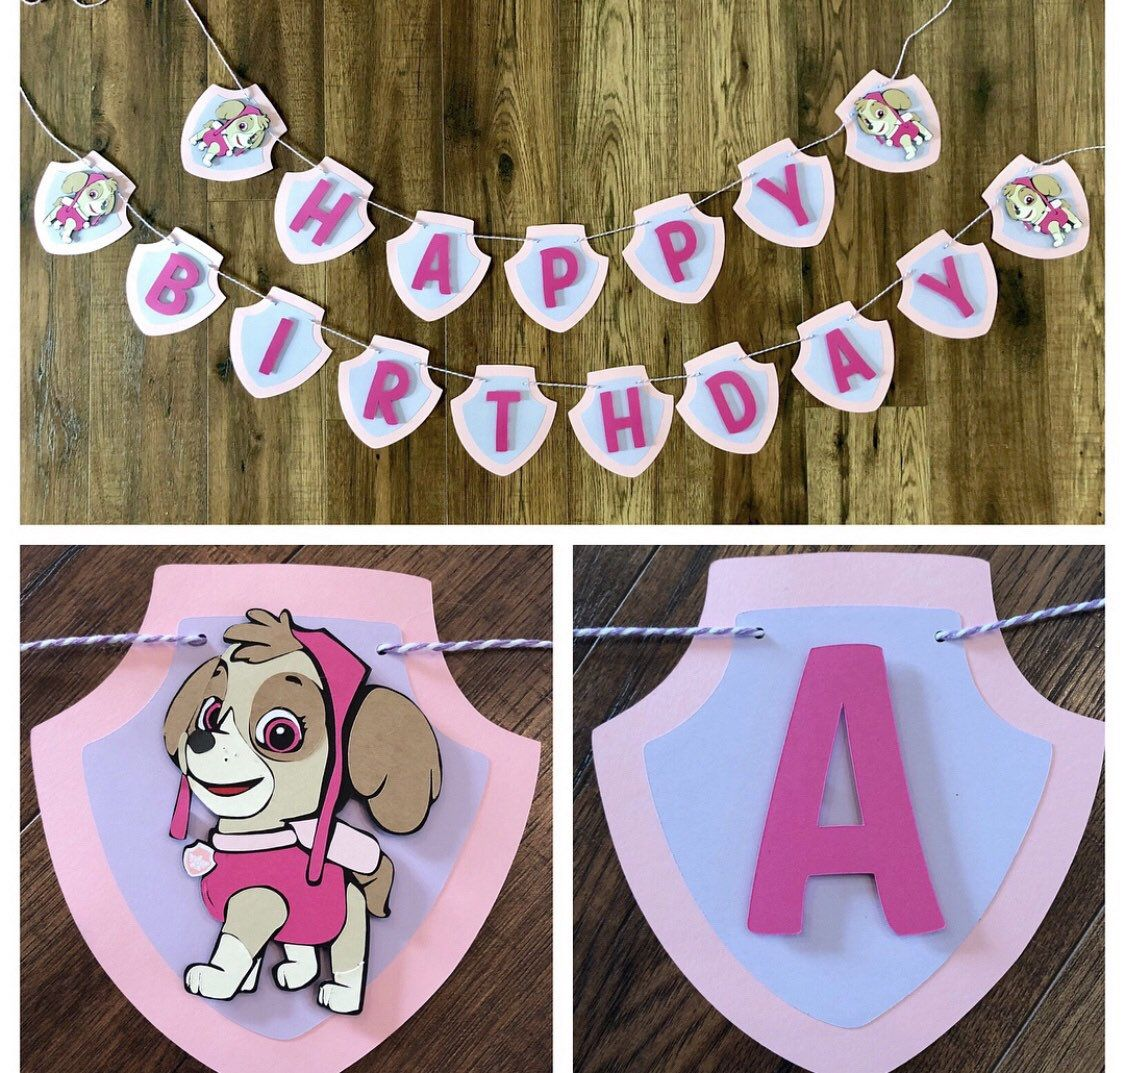 Paw Patrol Banner, Paw Patrol Birthday Banner, Birthday Party Decor, Paw Patrol Decor, Paw Patrol Birthday - Paw patrol decorations, Paw patrol banner, Skye paw patrol party, Paw patrol birthday, Birthday banner, Birthday party decorations - Hand made Need matching decor in this theme but don't see it in my shop  Message me so that I can create something for you! I love custom orders! PLEASE PROVIDE DATE NEEDED BY IN COMMENTS TO SELLER! Details  All items in photos sold individually    Make your selection from purchase option menu   Characters printed on card stock & machine cut    Pennant colors and characters can be customized  Message seller before placing your order   LEGAL DISCLAIMER This item is not a licensed product  All copyrights and trademarks of the character images used belong to their respective owners and are not being sold with this listing  You are paying for my time, services and supplies used to create, customize and assemble this handmade piece for your own personal use